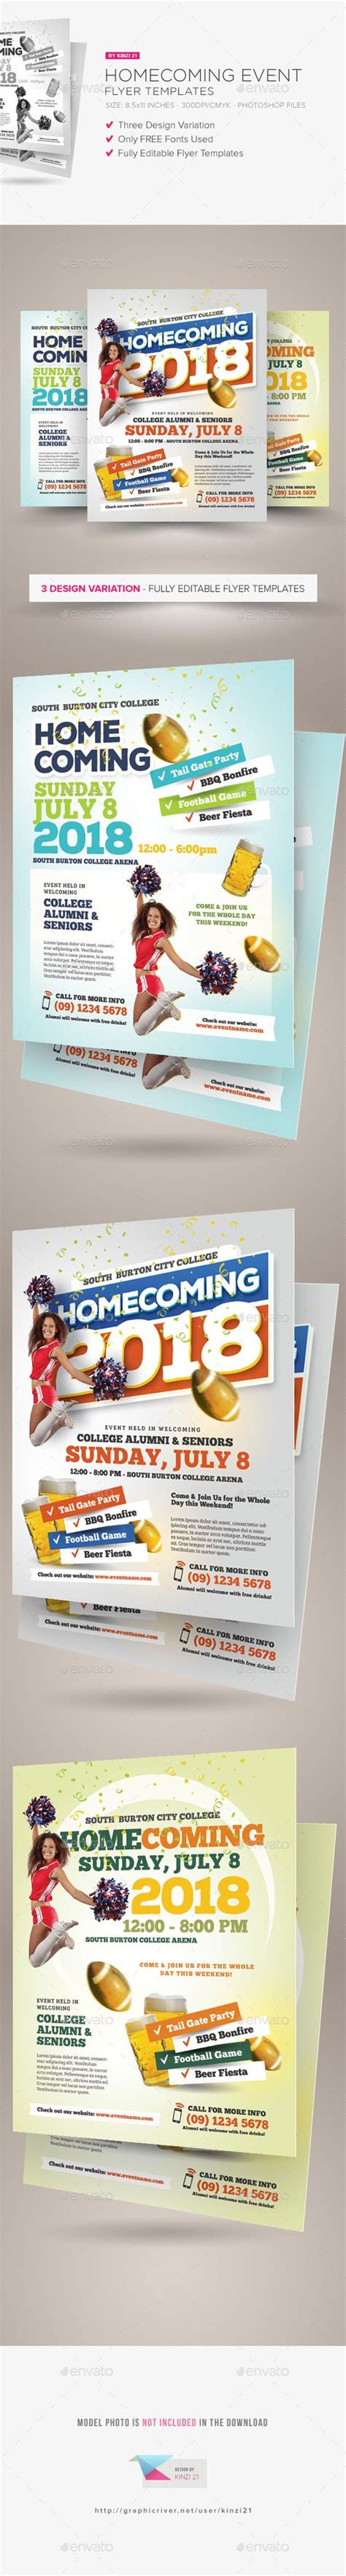 Event Flyers Flyer Template And Flyers On Pinterest Homecoming Flyer Template